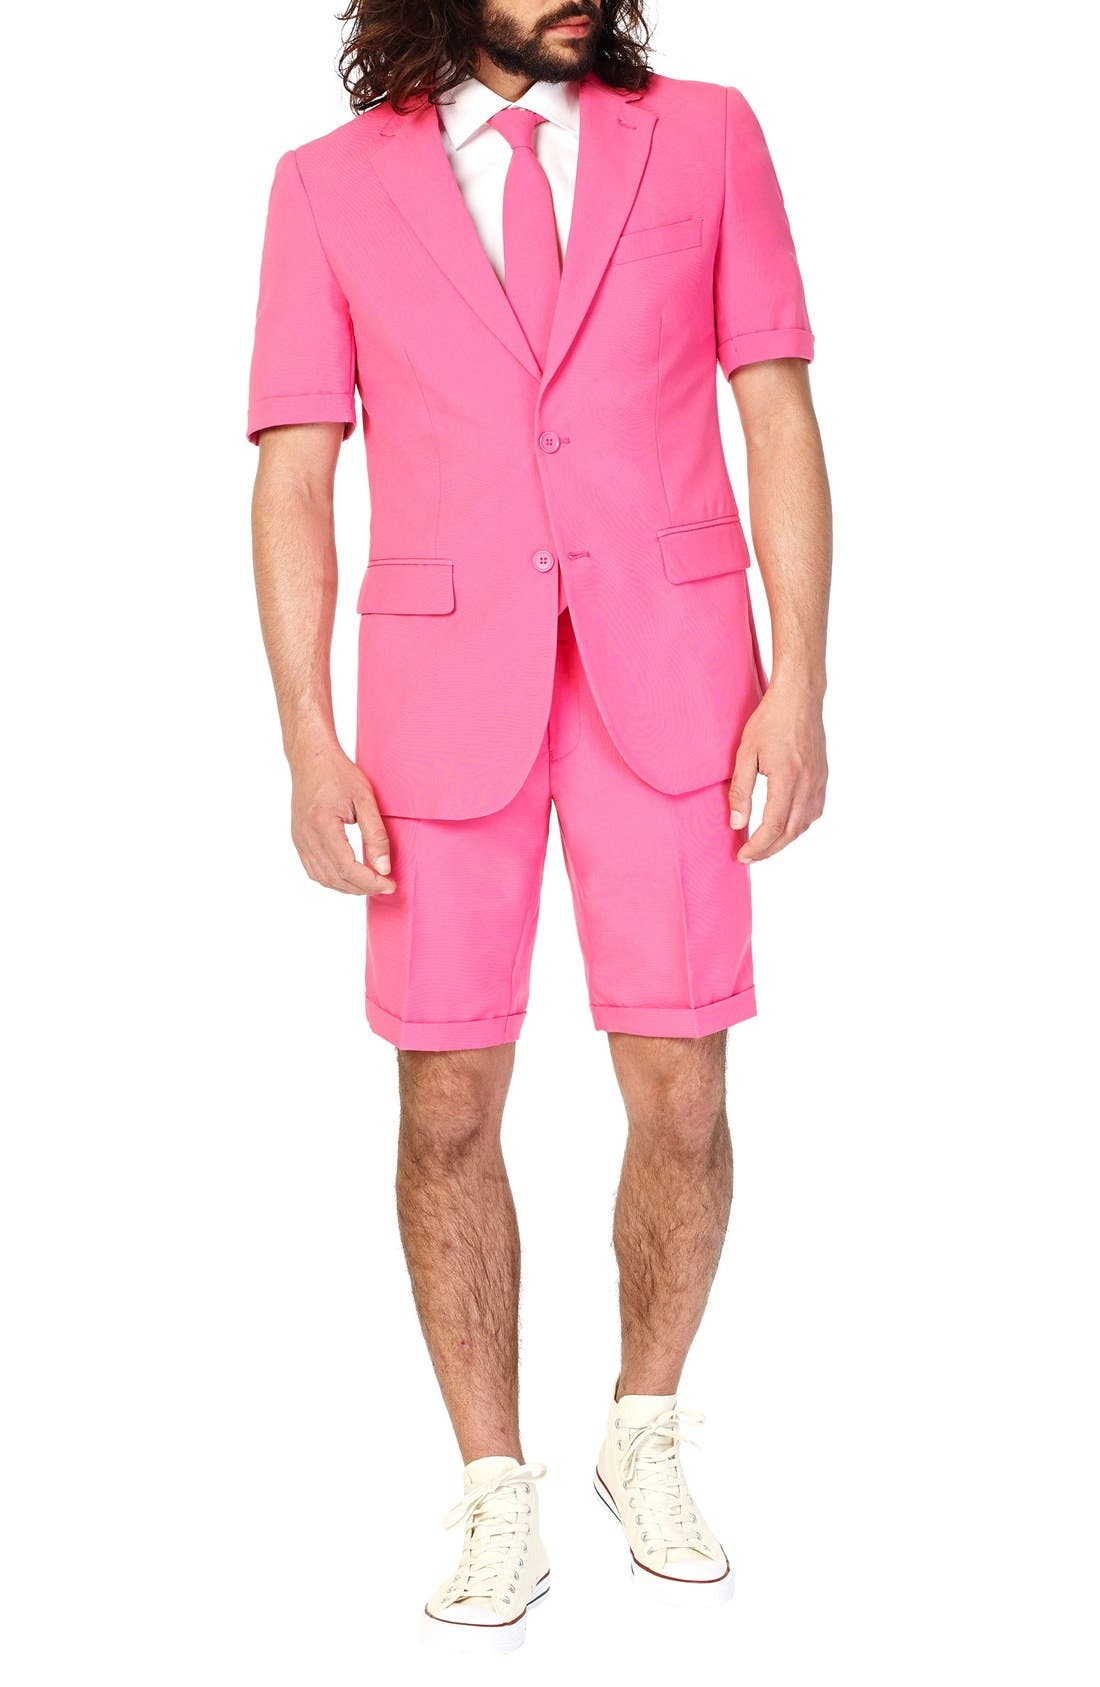 OppoSuits 'Mr. Pink - Summer' Trim Fit Two-Piece Short Suit with Tie